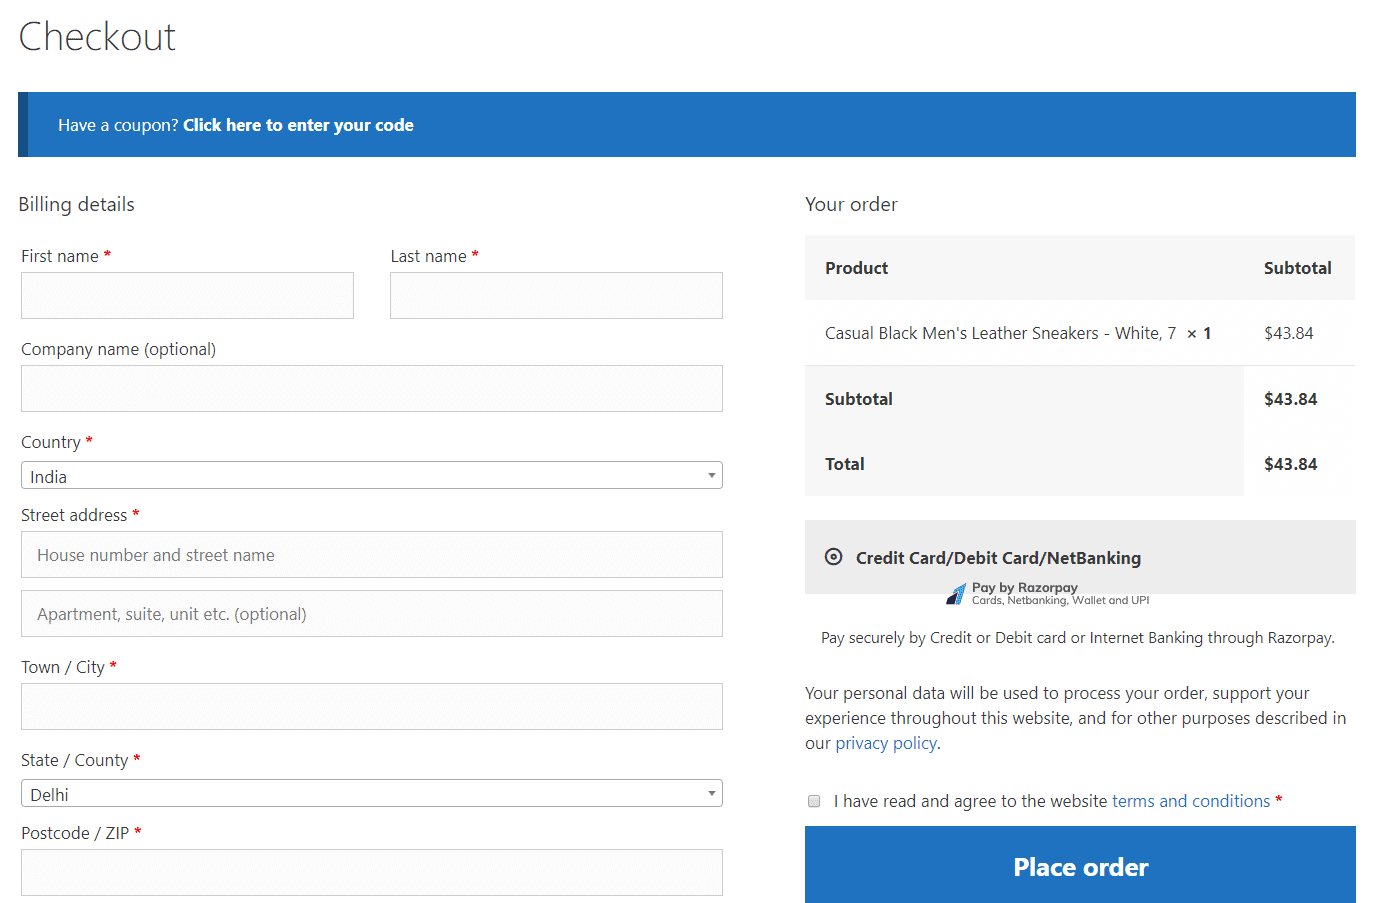 Optimized checkout page.